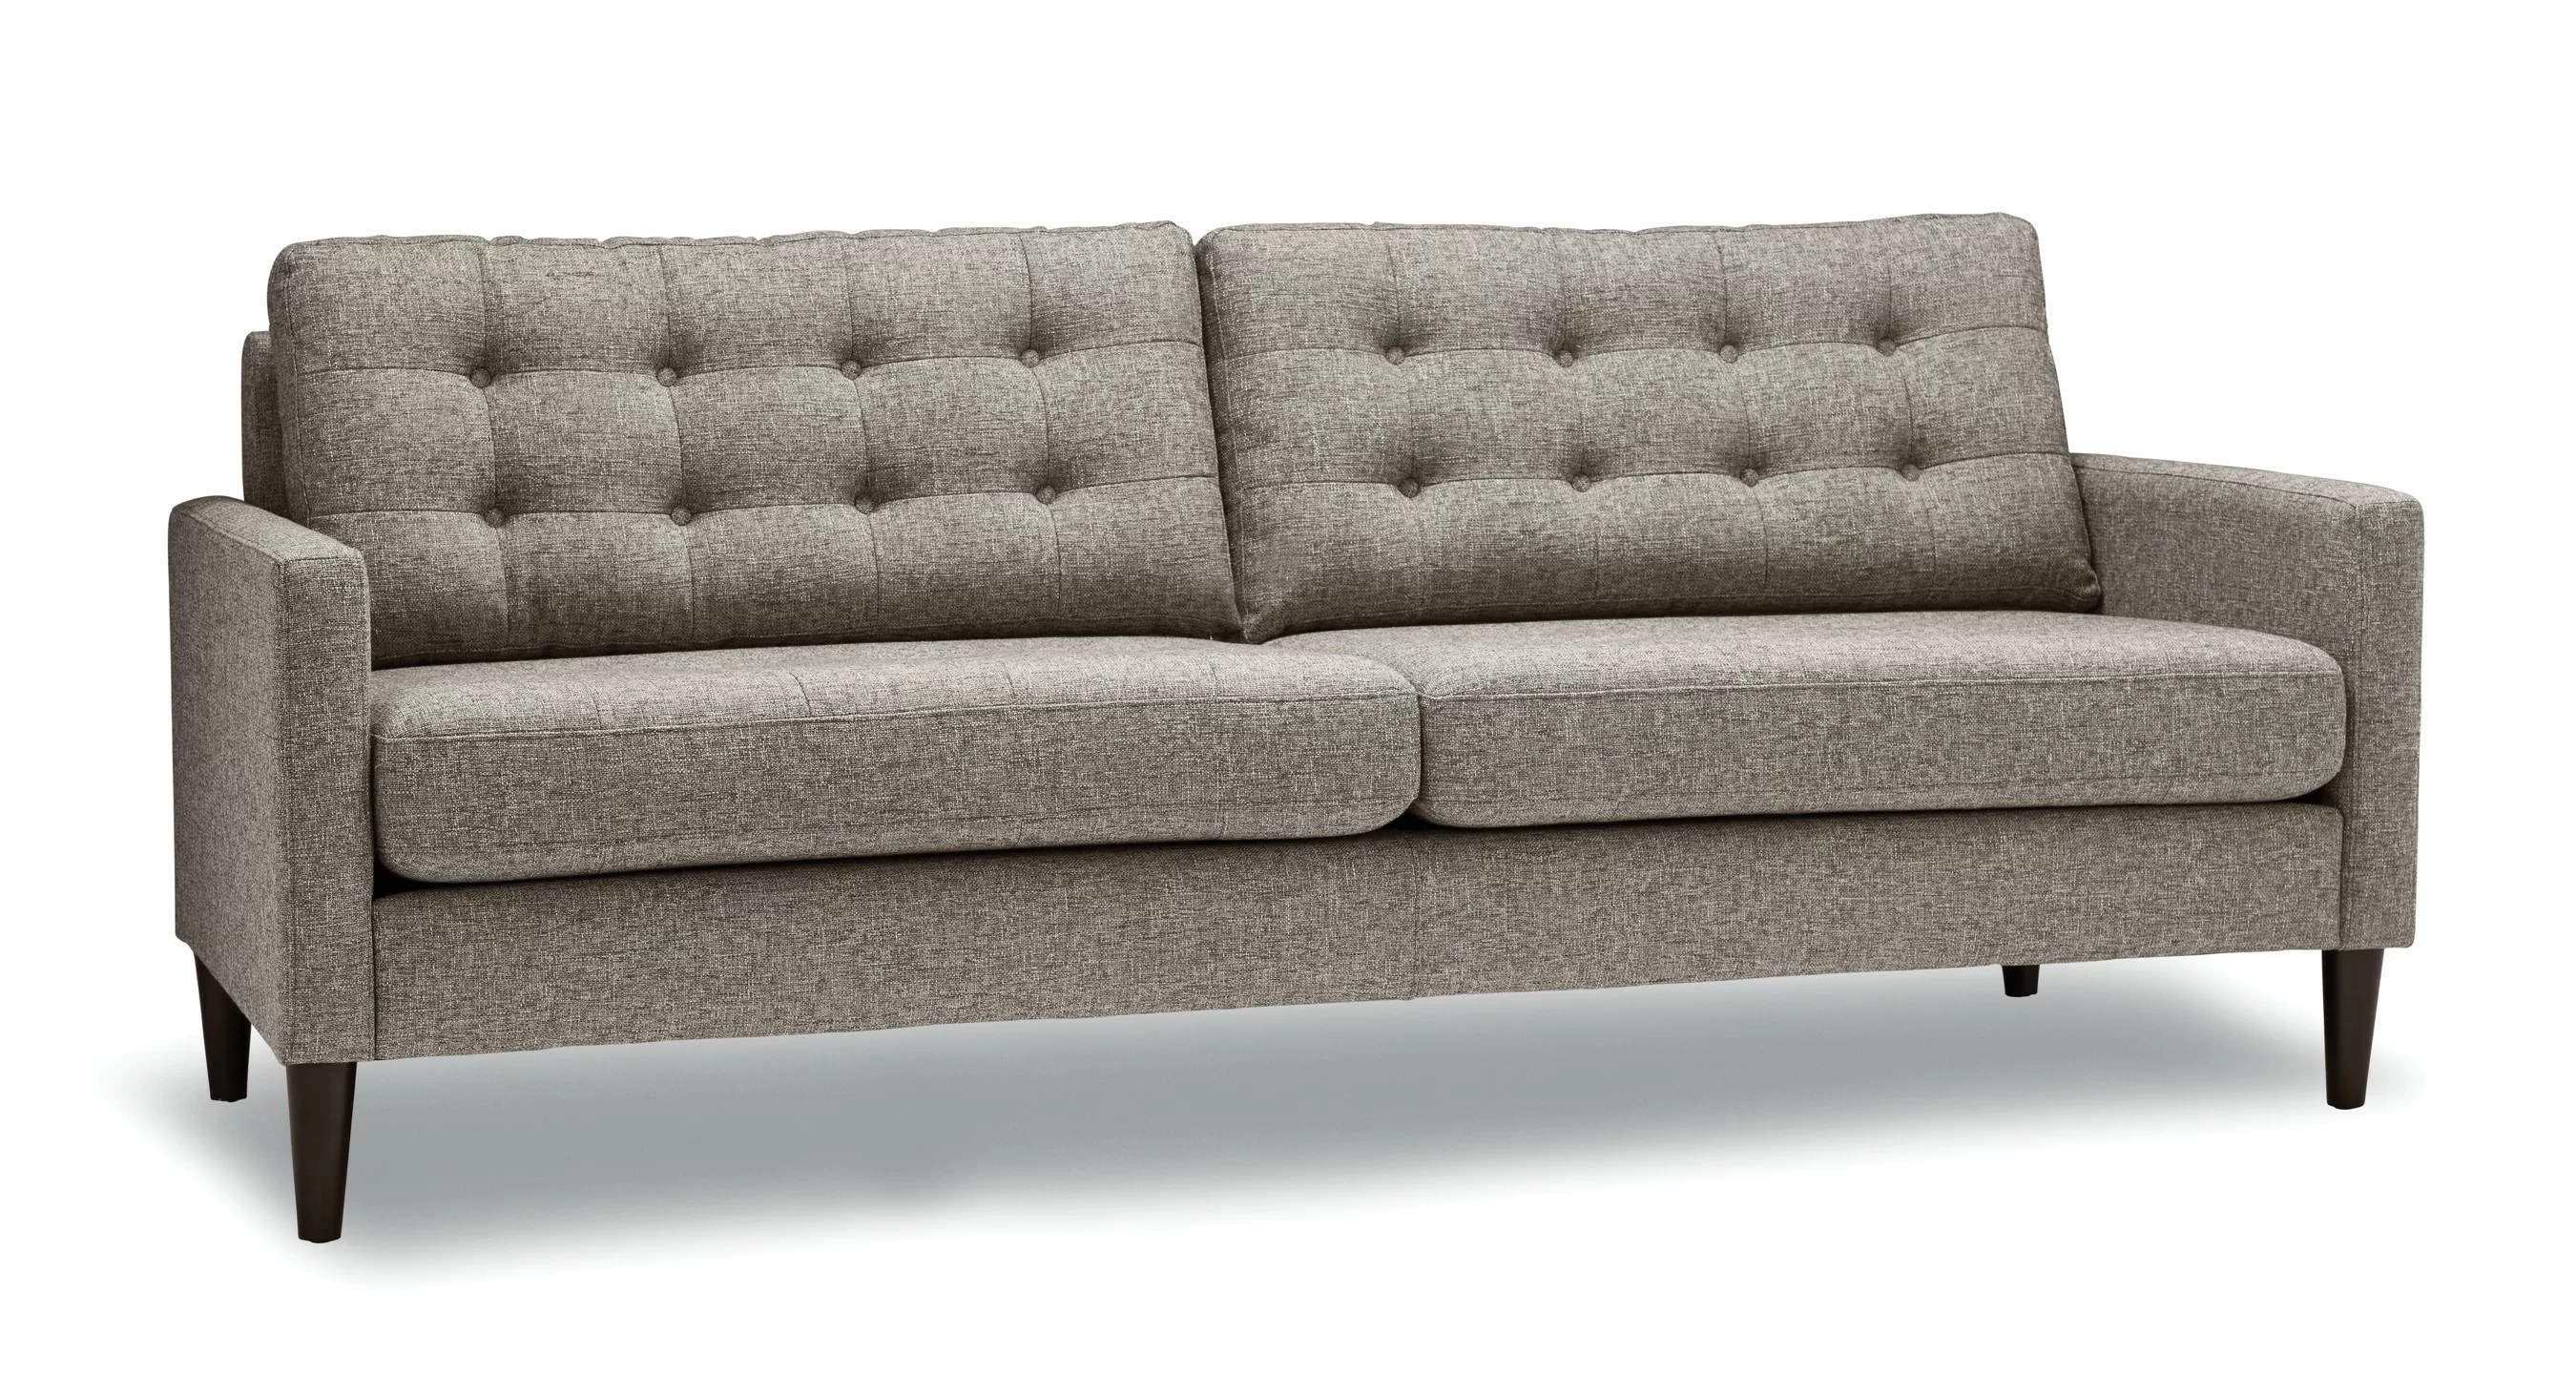 fairfield sofa bed cover informa george oliver wayfair